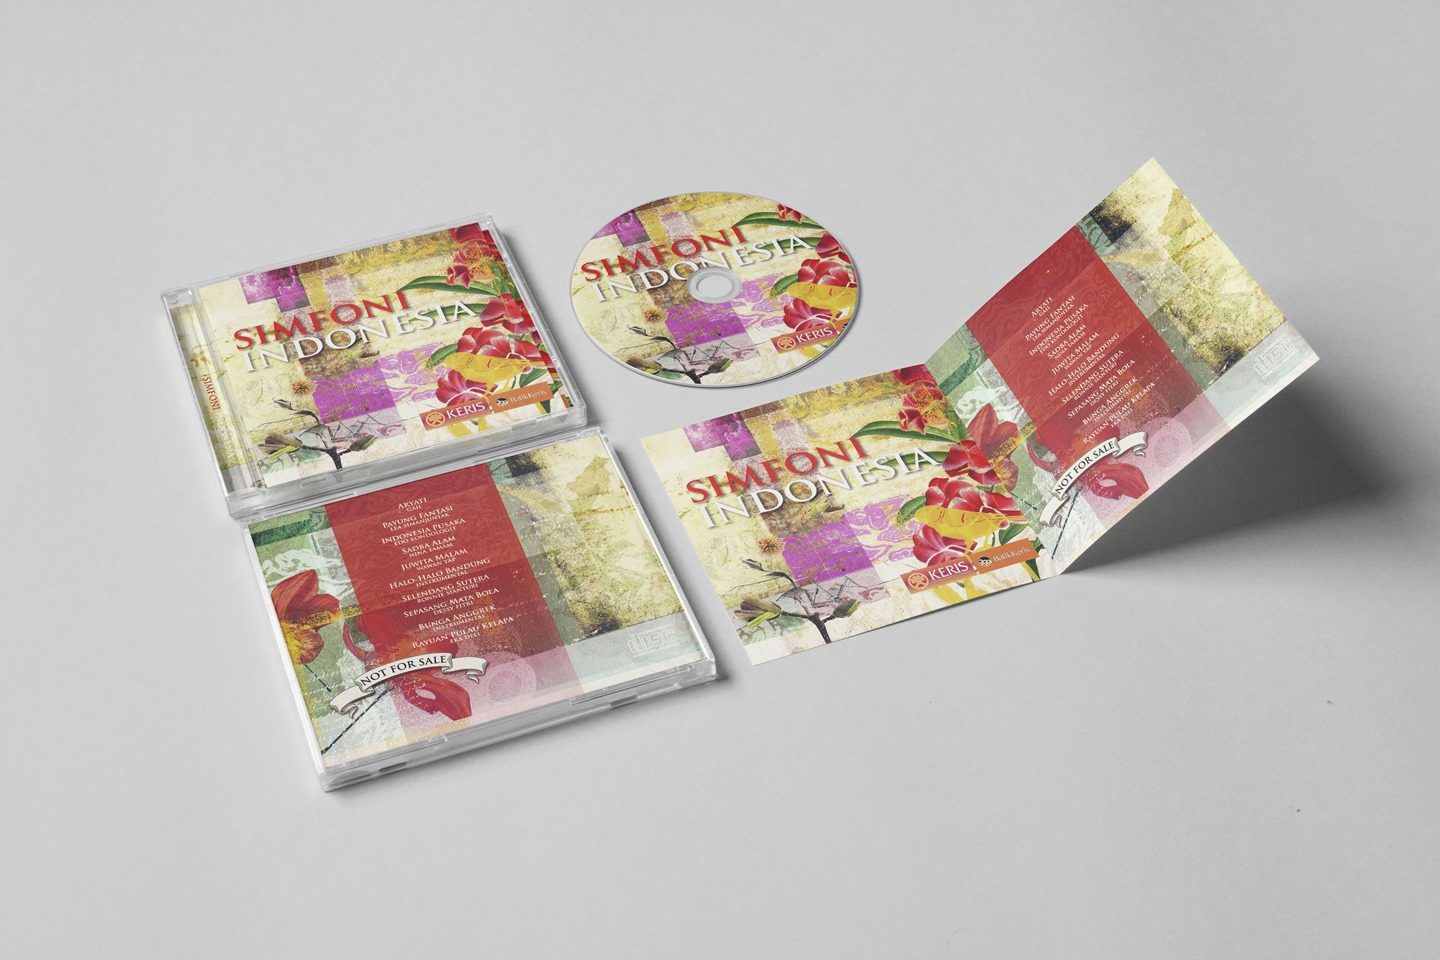 CD Simfoni Indonesia